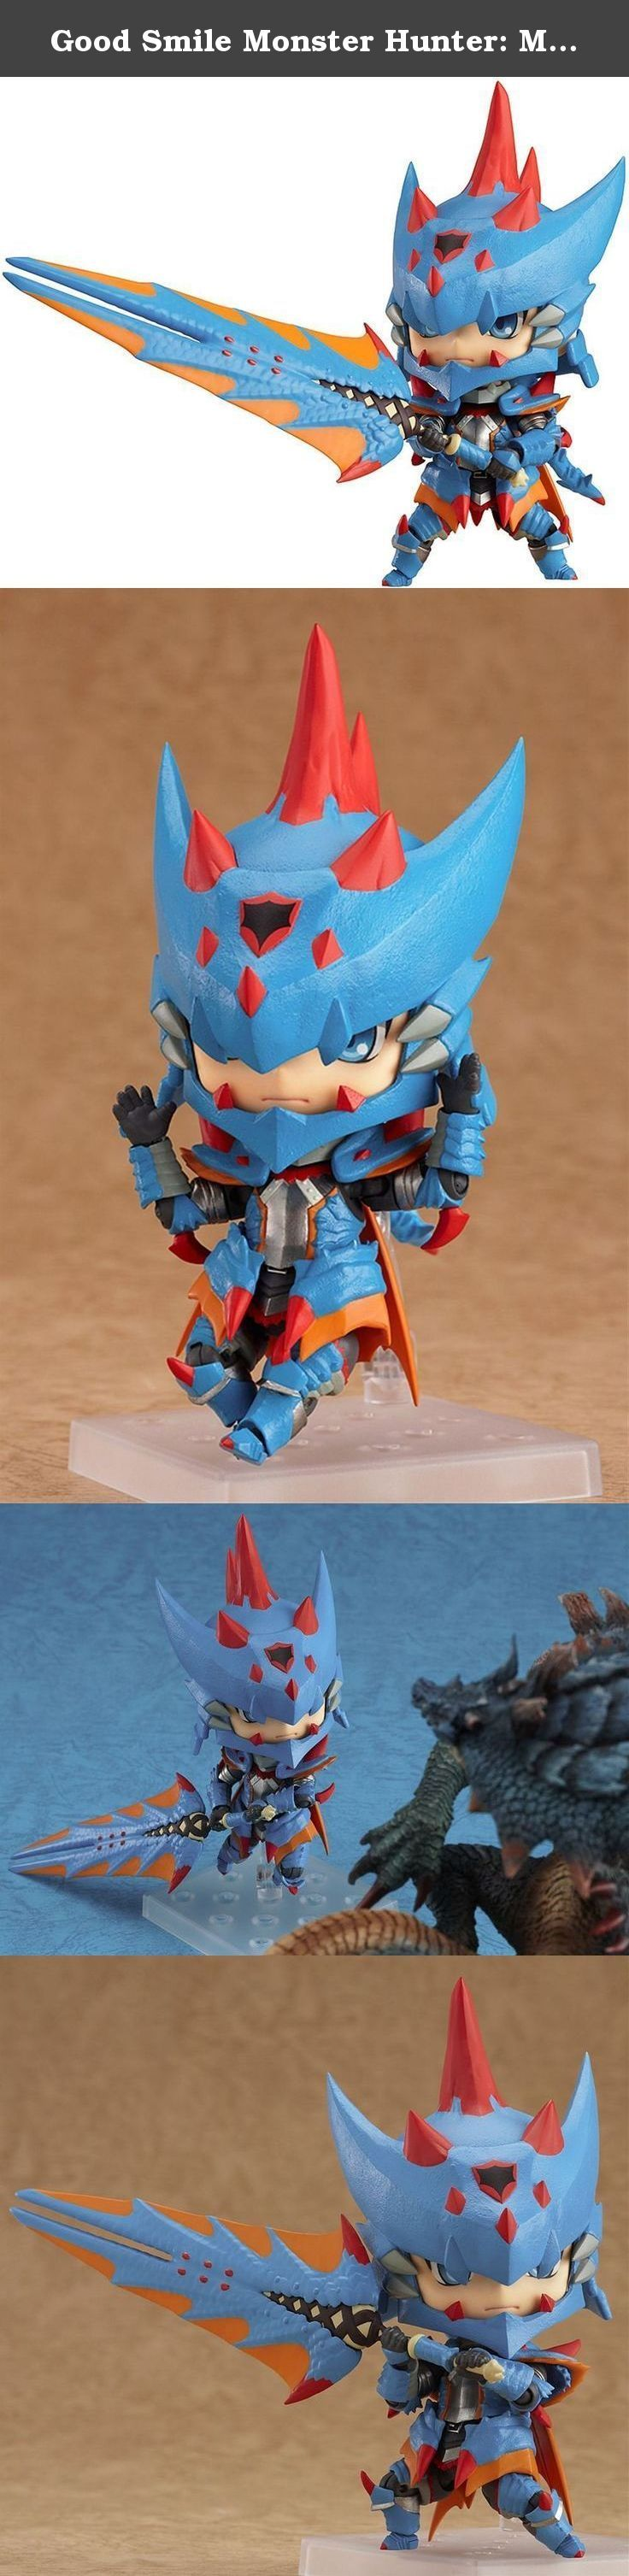 Good Smile Monster Hunter: Male Swordsman Nendoroid Action Figure Lagia X Edition. From Good Smile Company. From the Nintendo 3DS exclusive game, 'Monster Hunter Tri G' comes a fully posable Nendoroid of the male swordsman wearing the G-class 'Lagia X Series' of armor that can only be made using materials from the powerful sea wyvern, Lagiacrus! The surface of his armor has been given a very solid finish to recreate the protective appearance of the armor, and in total he features an…